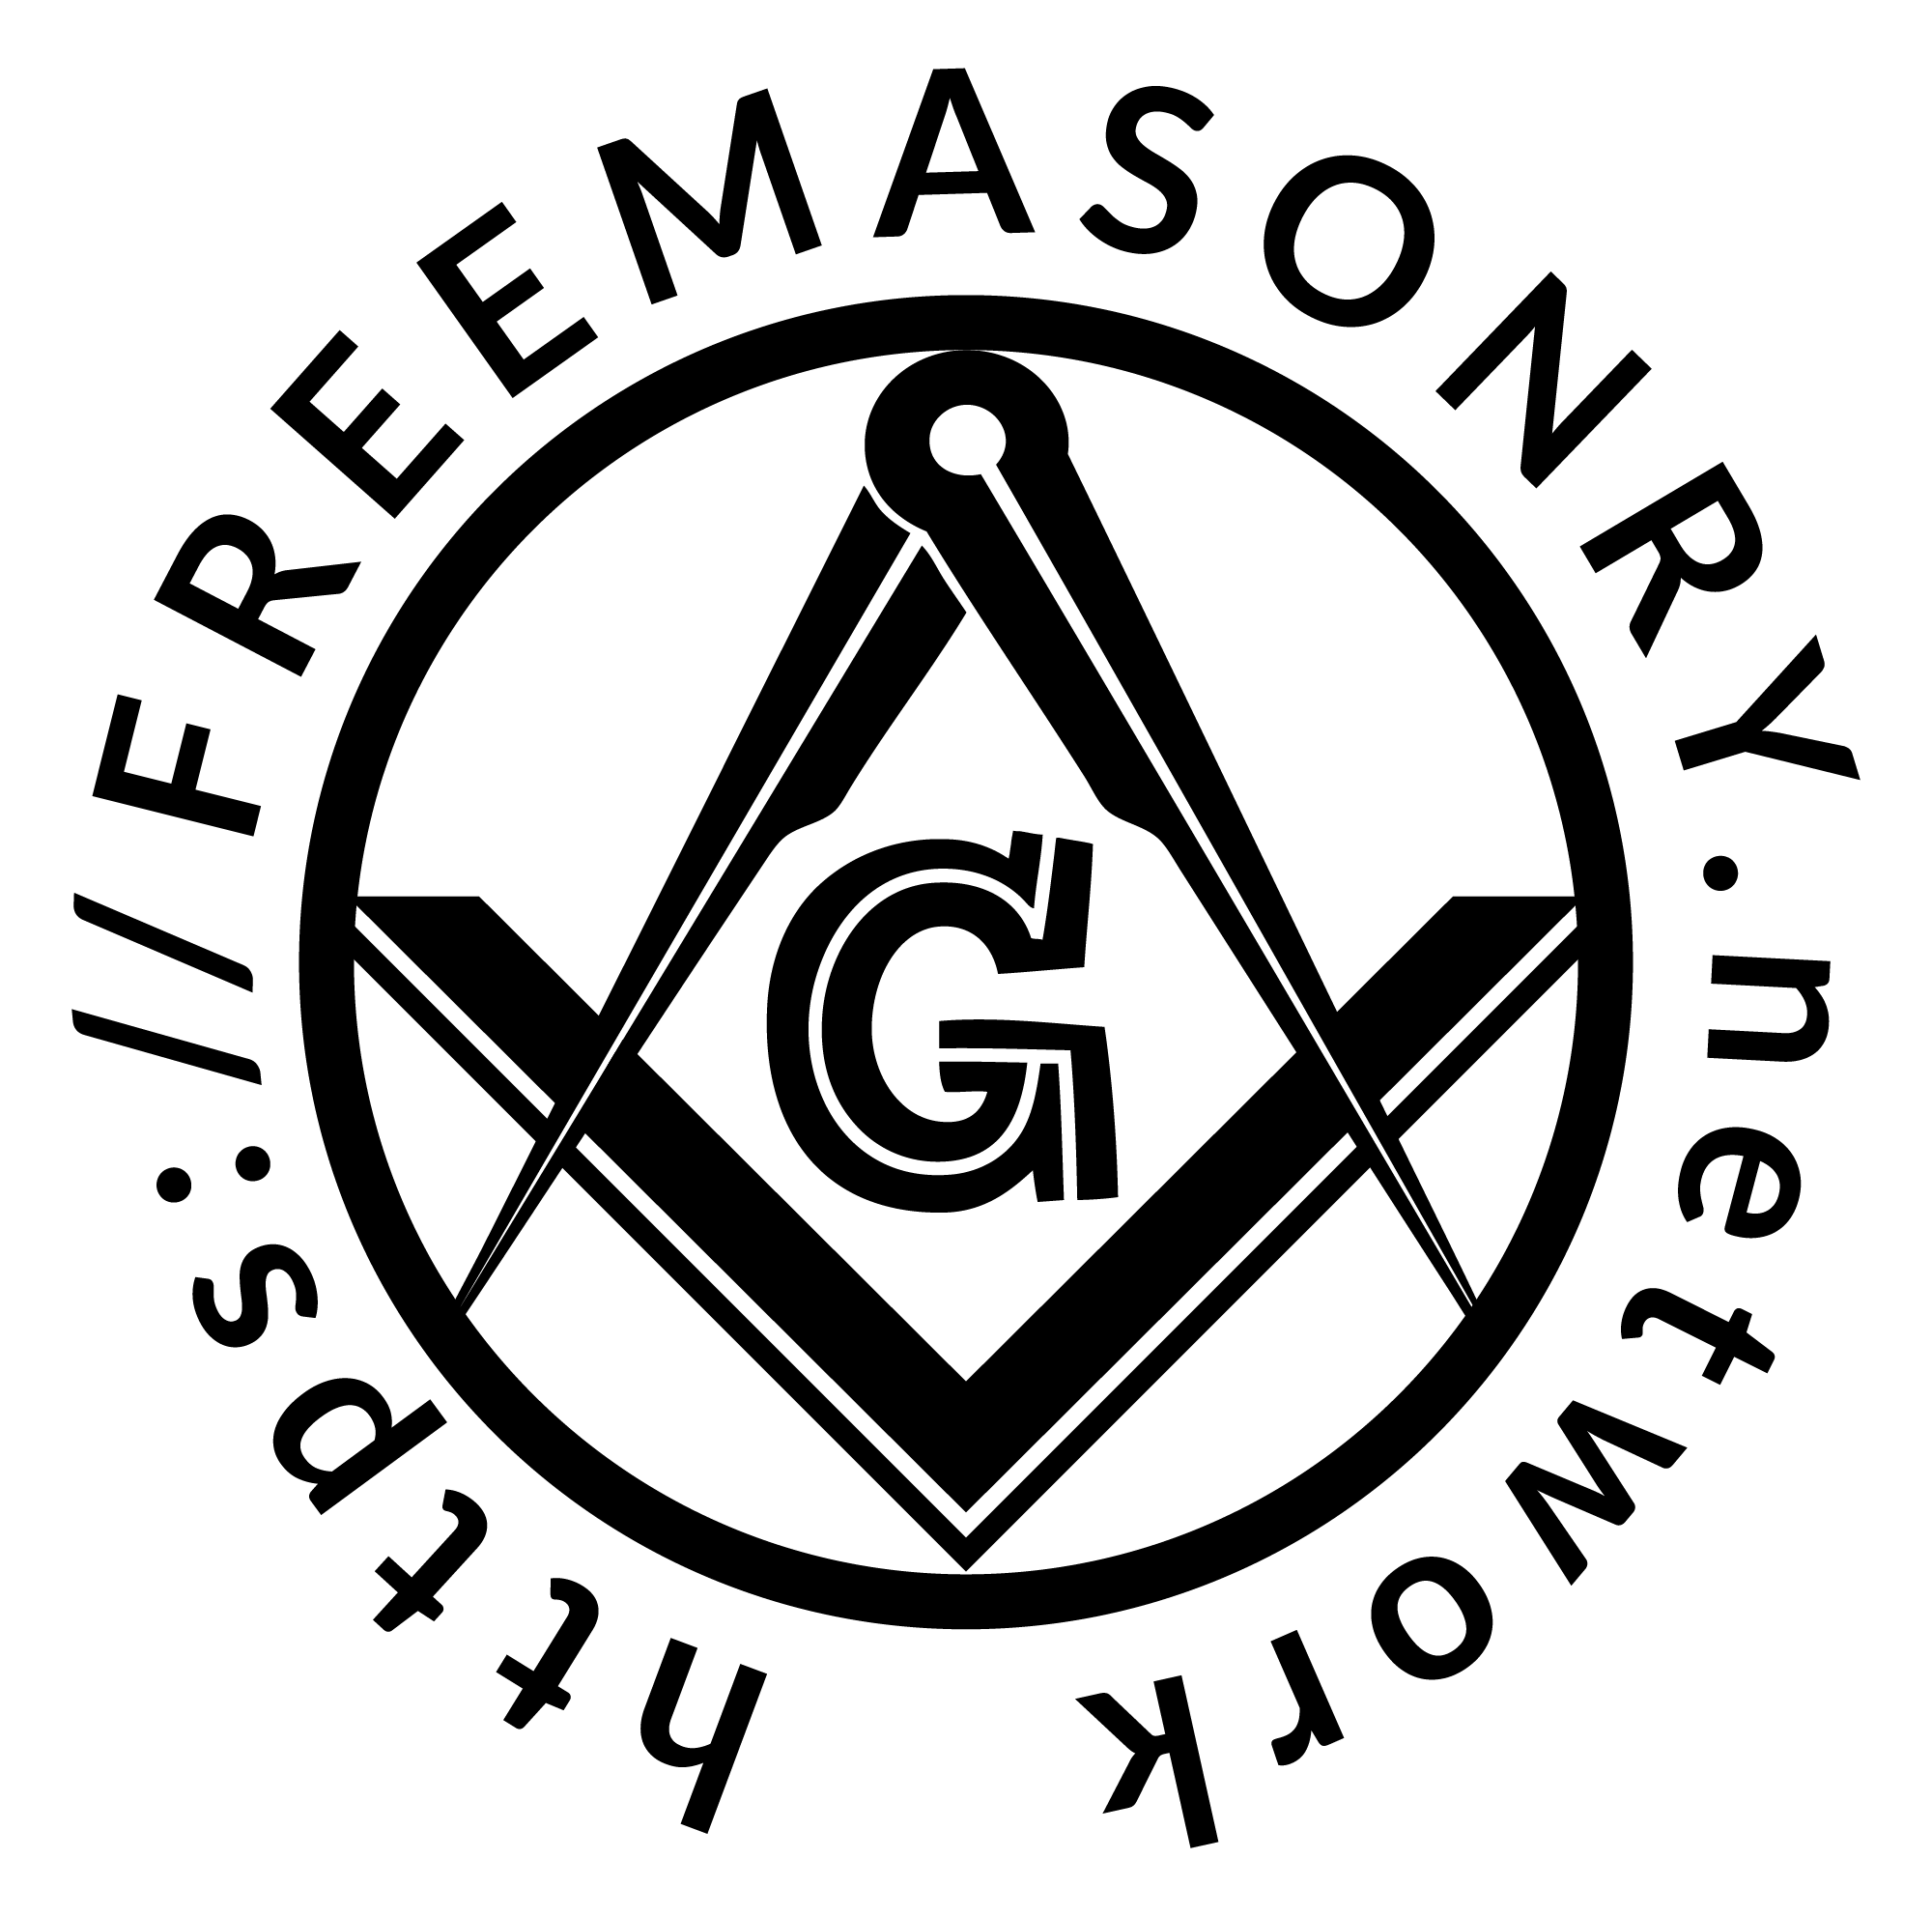 SCIENCE IN MASONIC LODGES